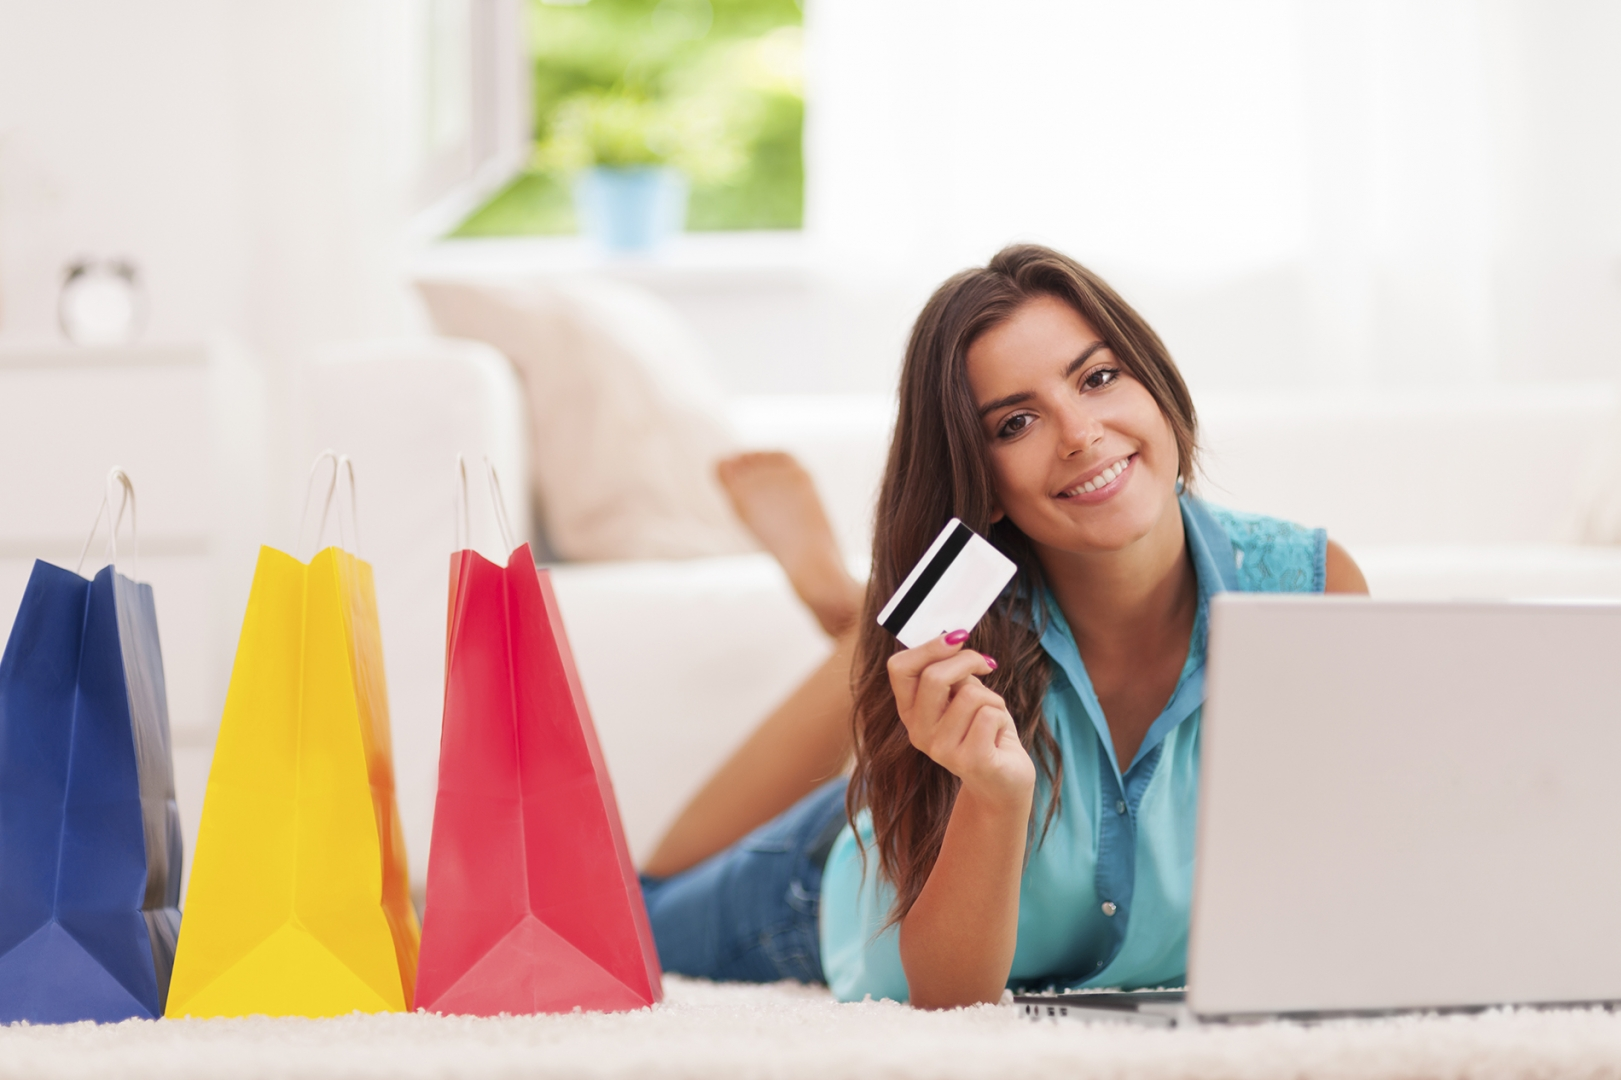 A female consumer shops online